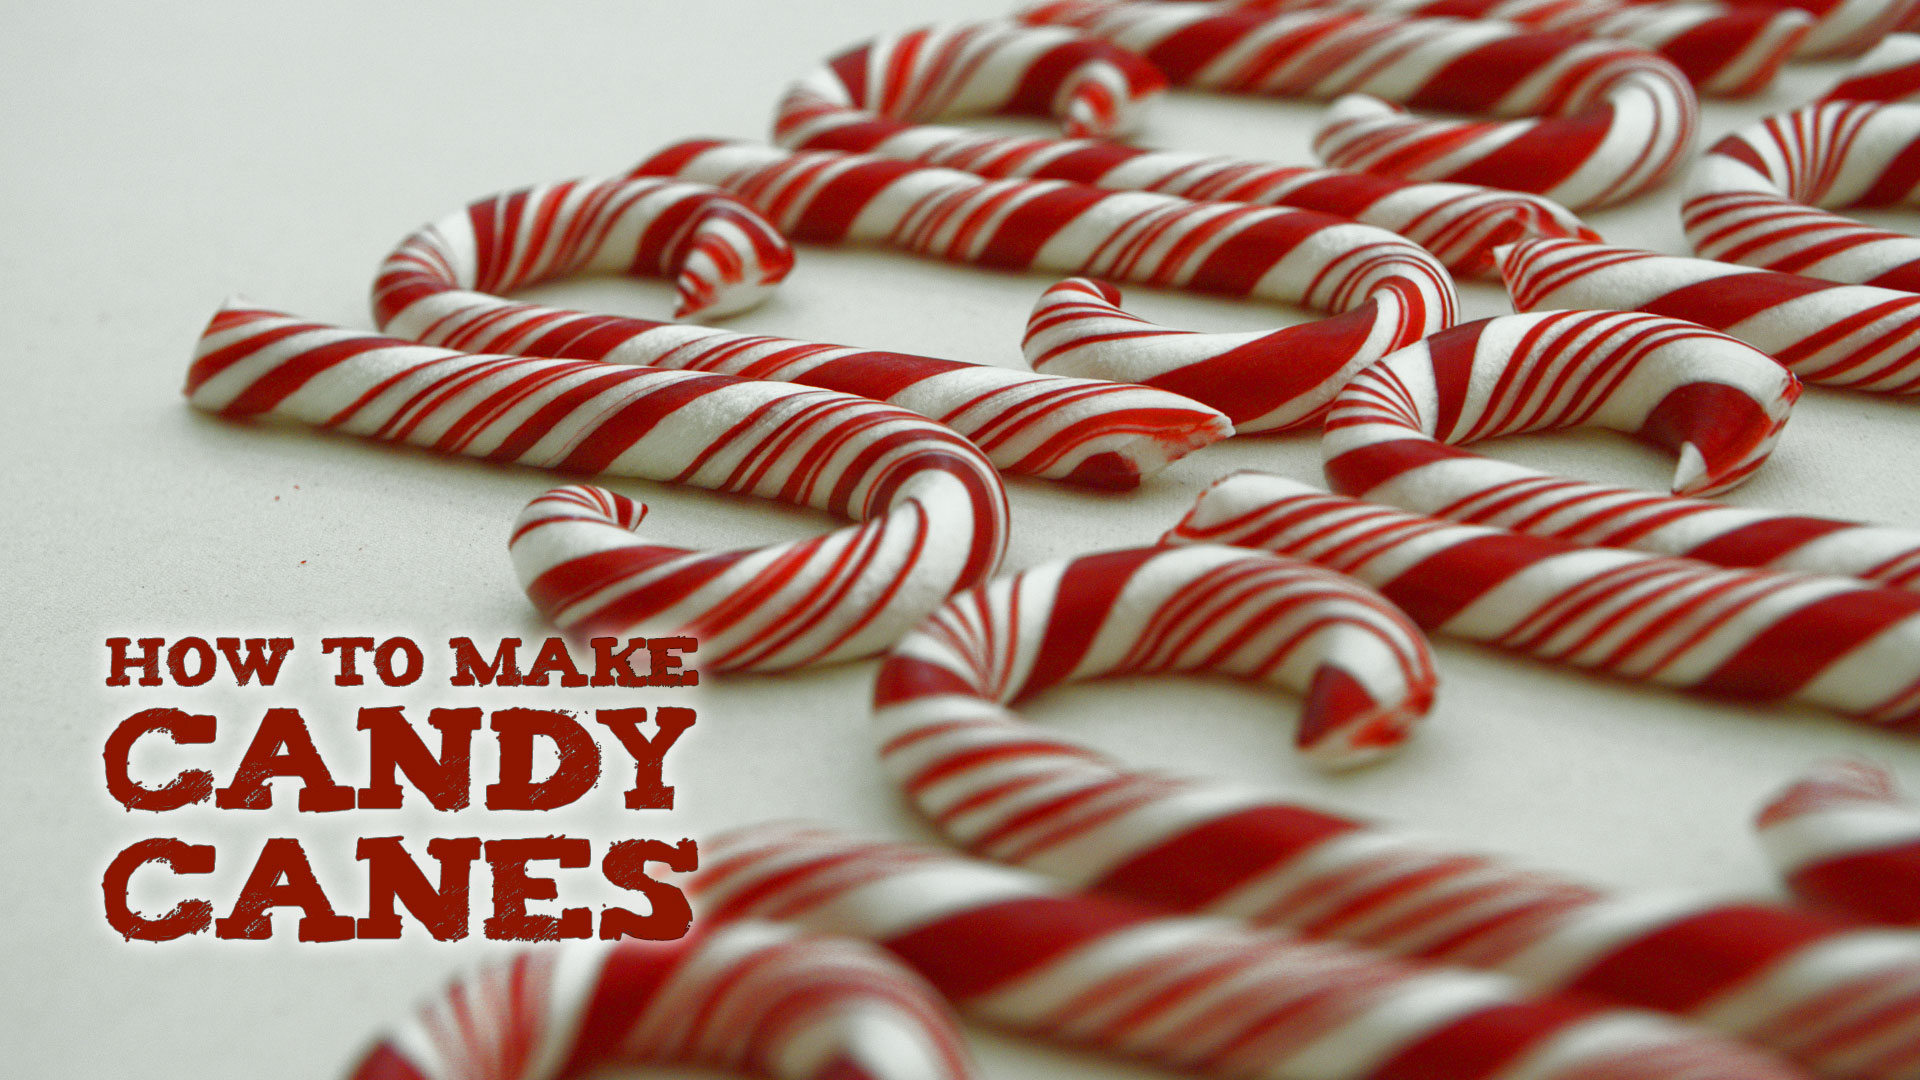 How to Make Candy Canes